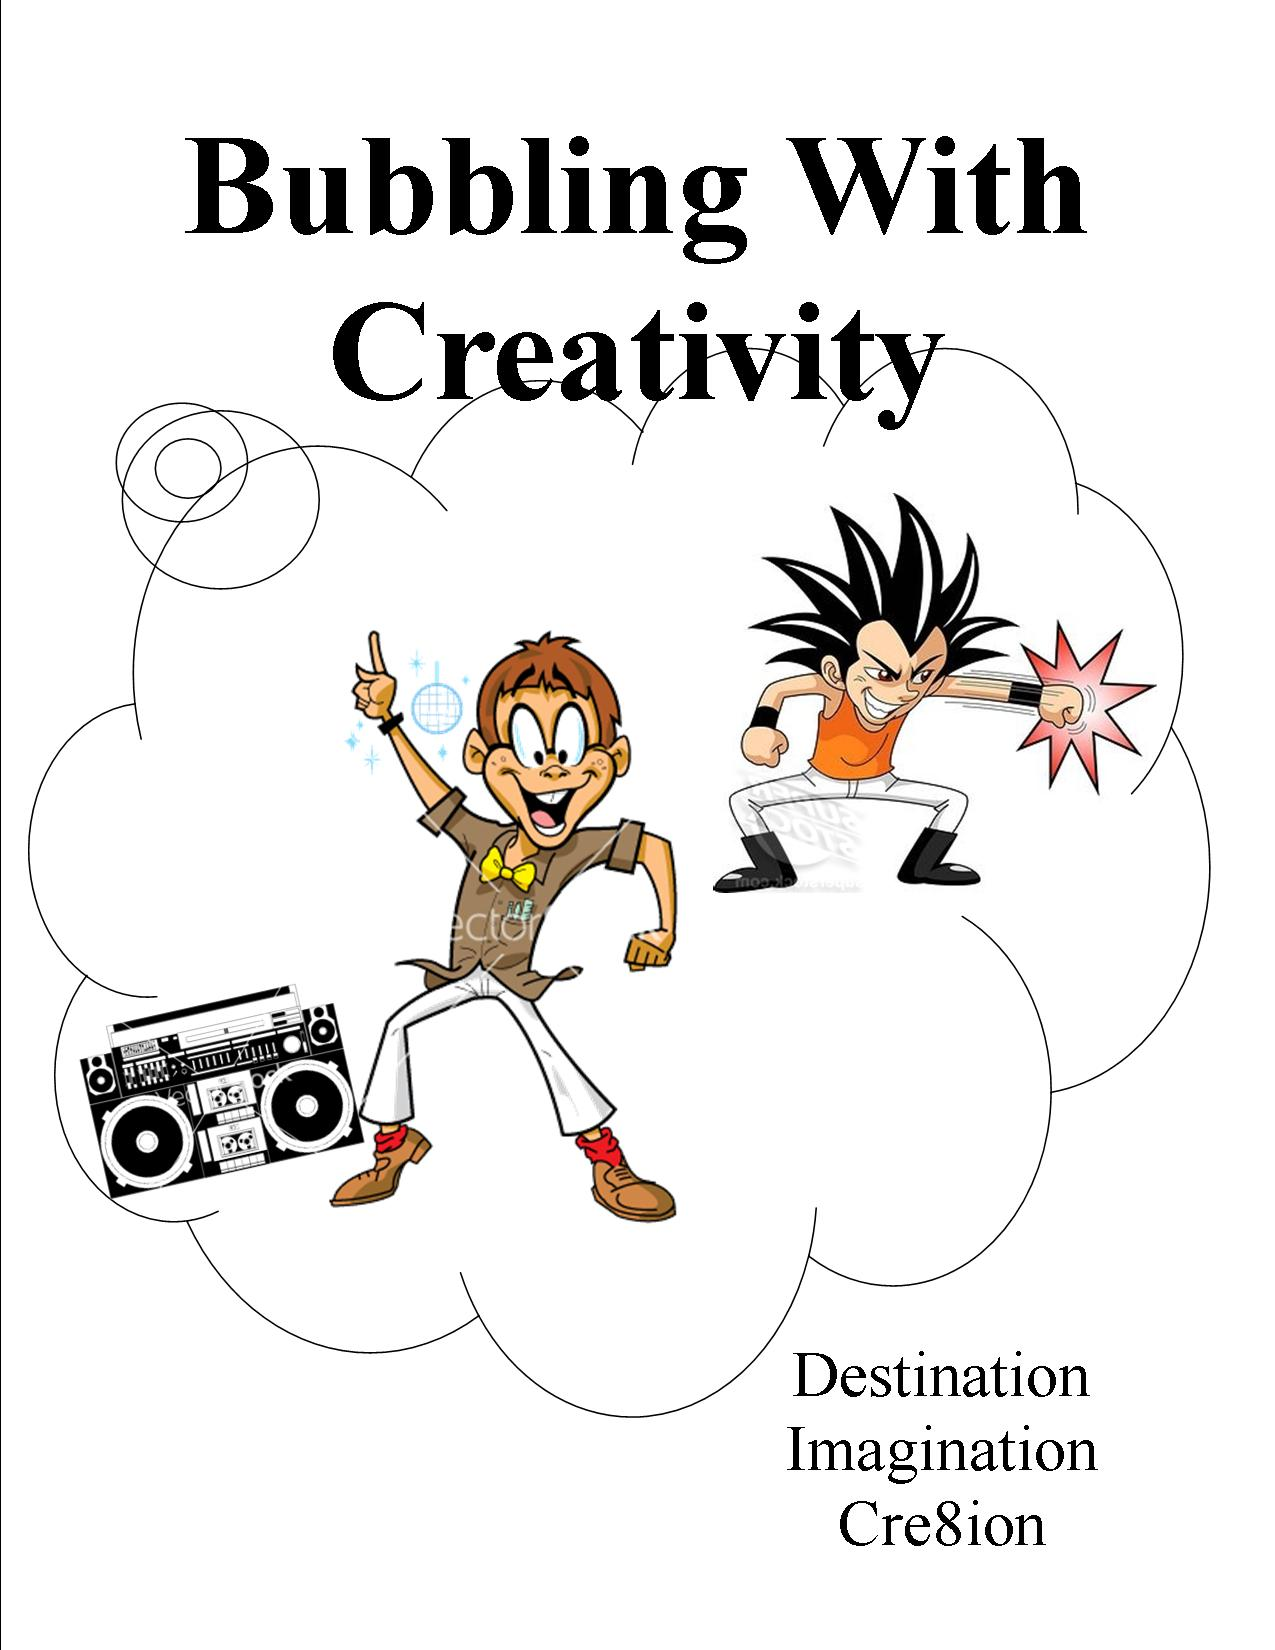 Design 5 - Bubbling With Creativity